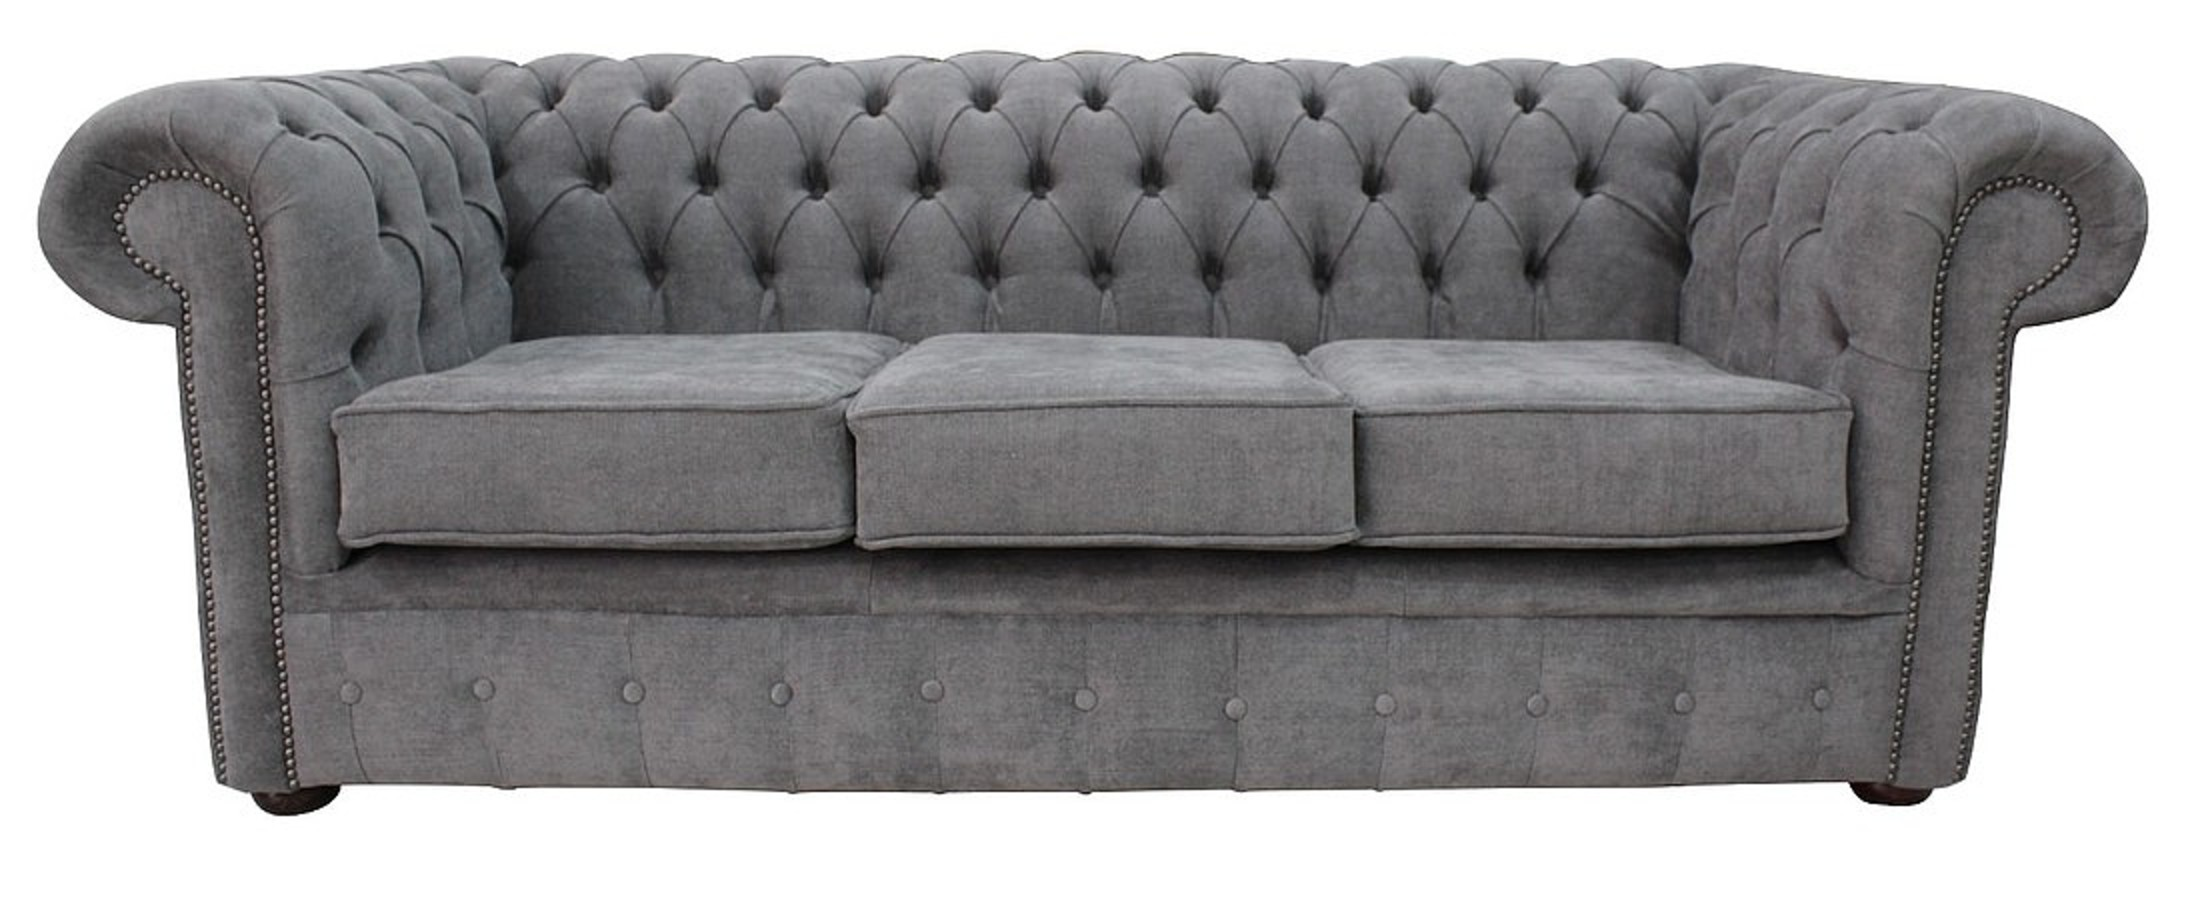 fabric sofas uk cheap the cloud sofa reviews designersofas4u buy pewter chesterfield 3 seater settee marinello offer